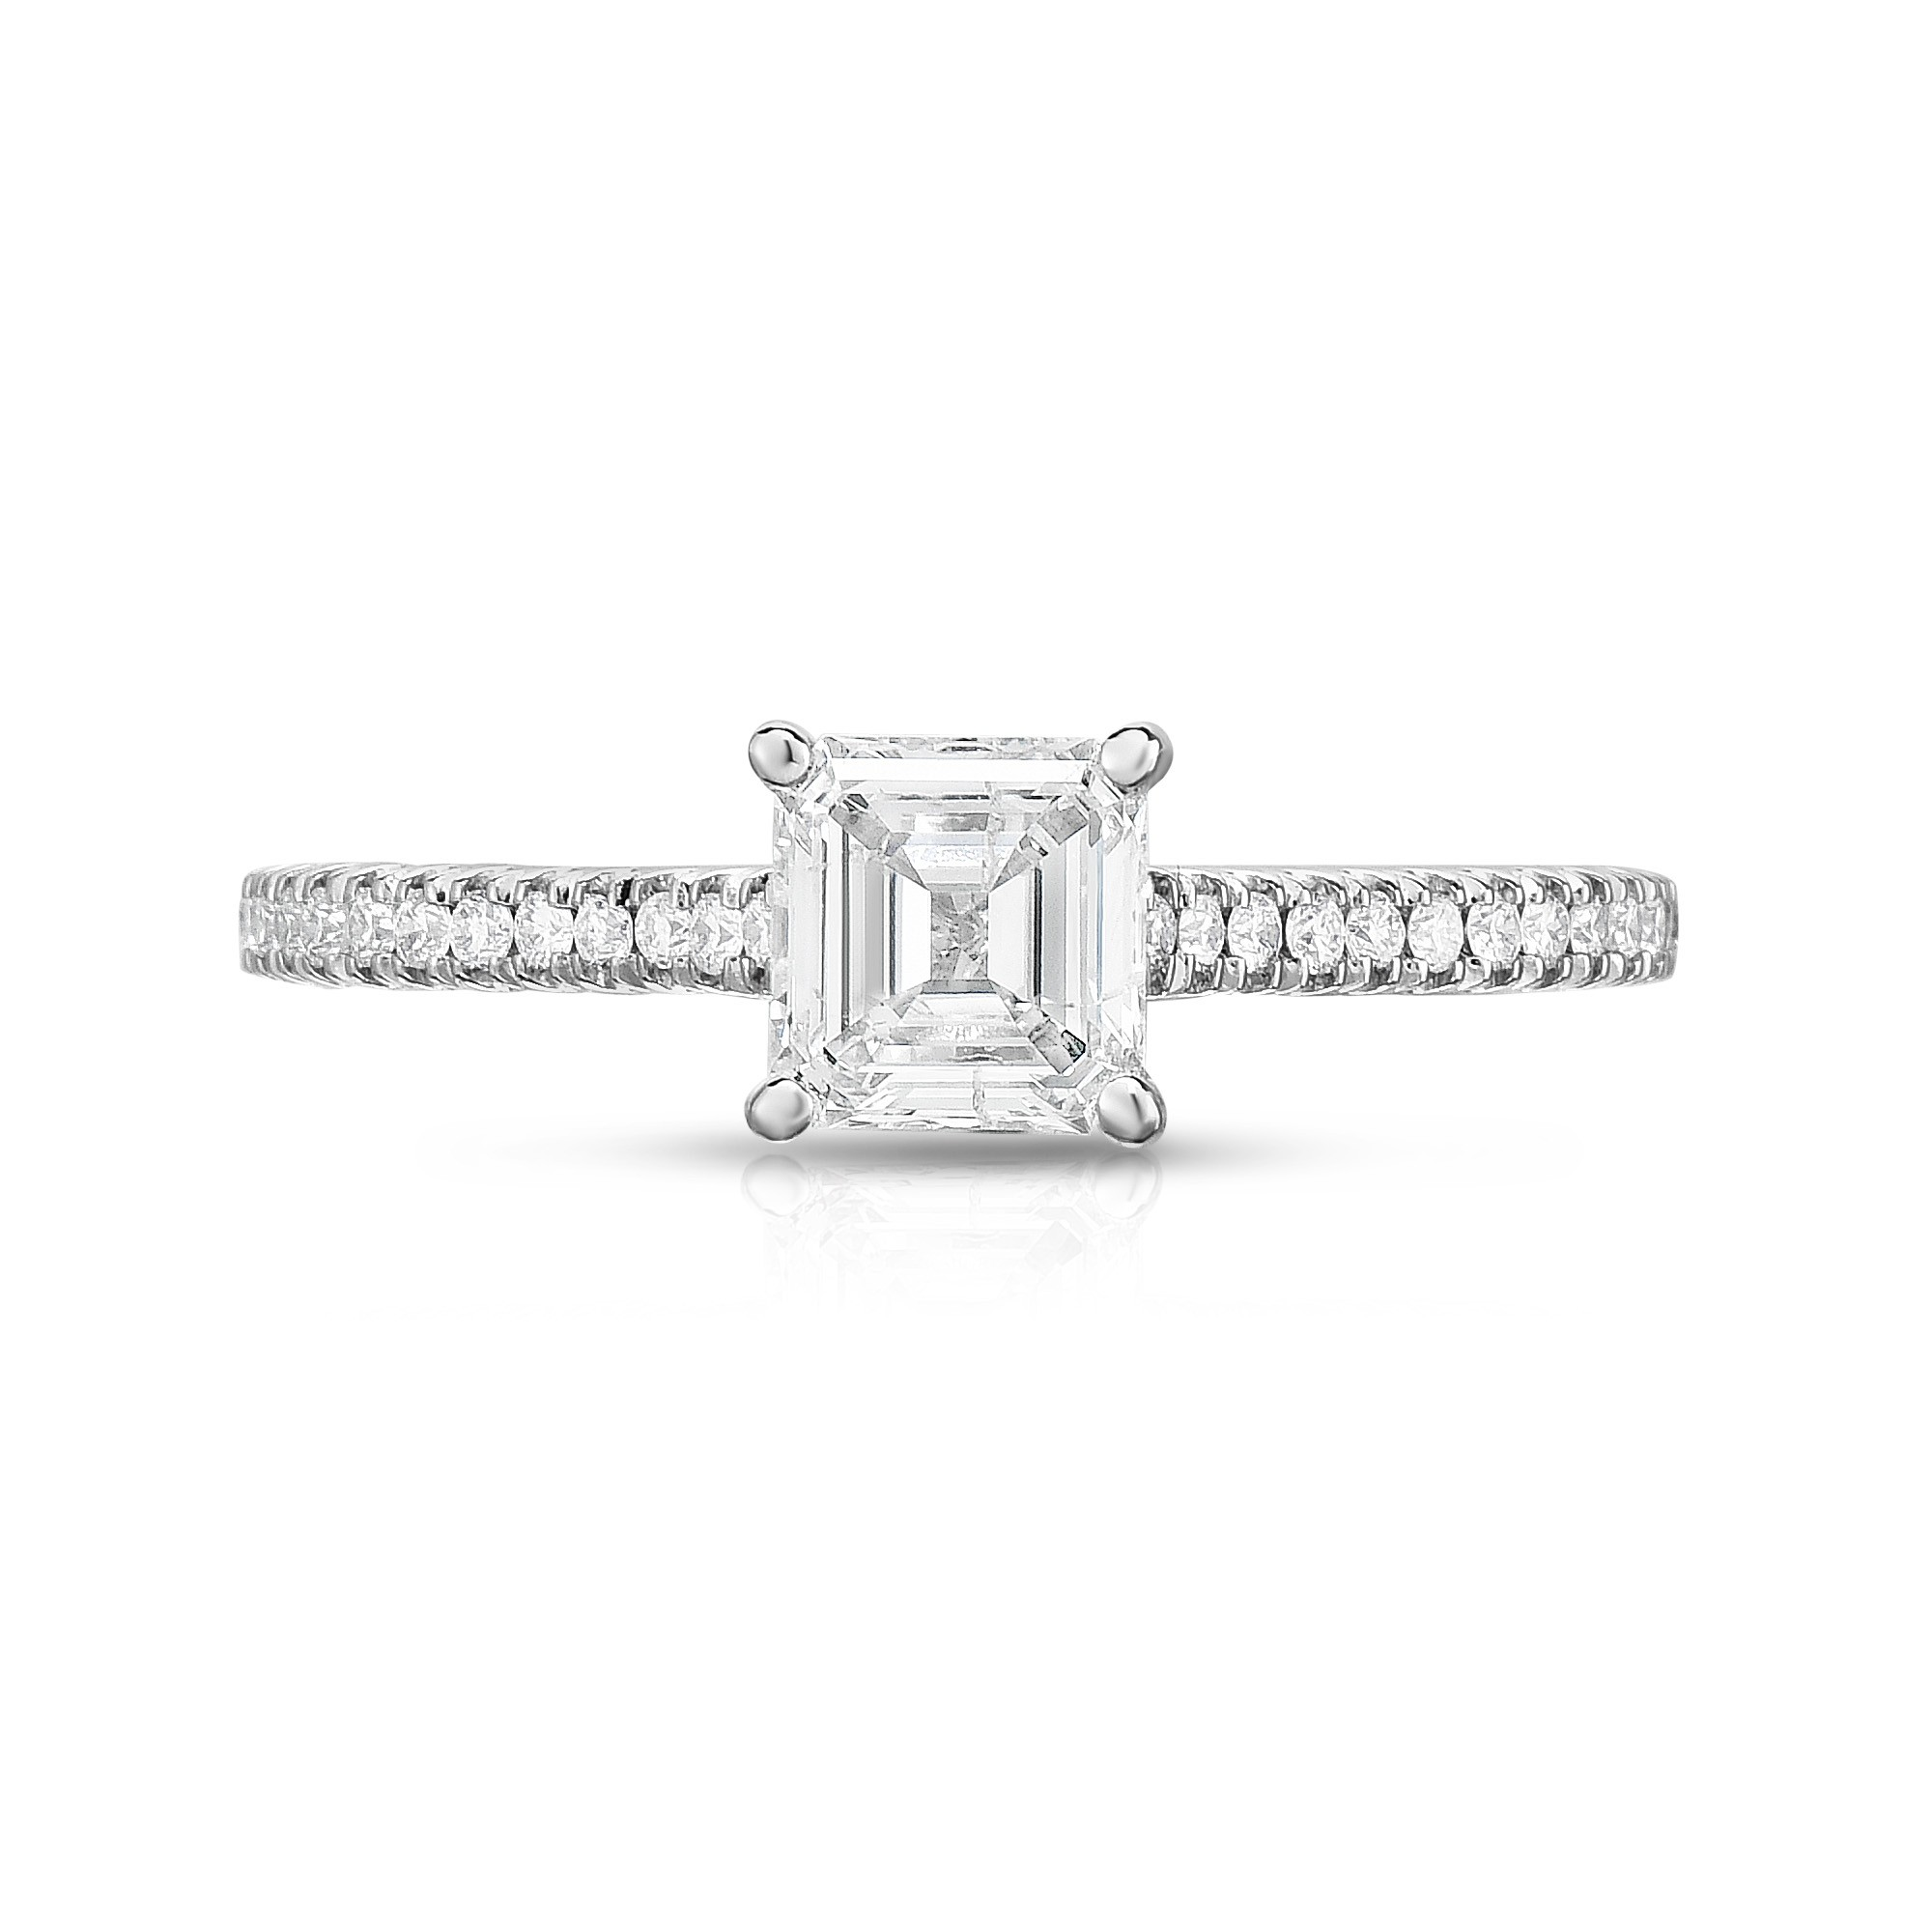 jewellery tiffany inspirational cut new engagement ring diamond of rings asscher